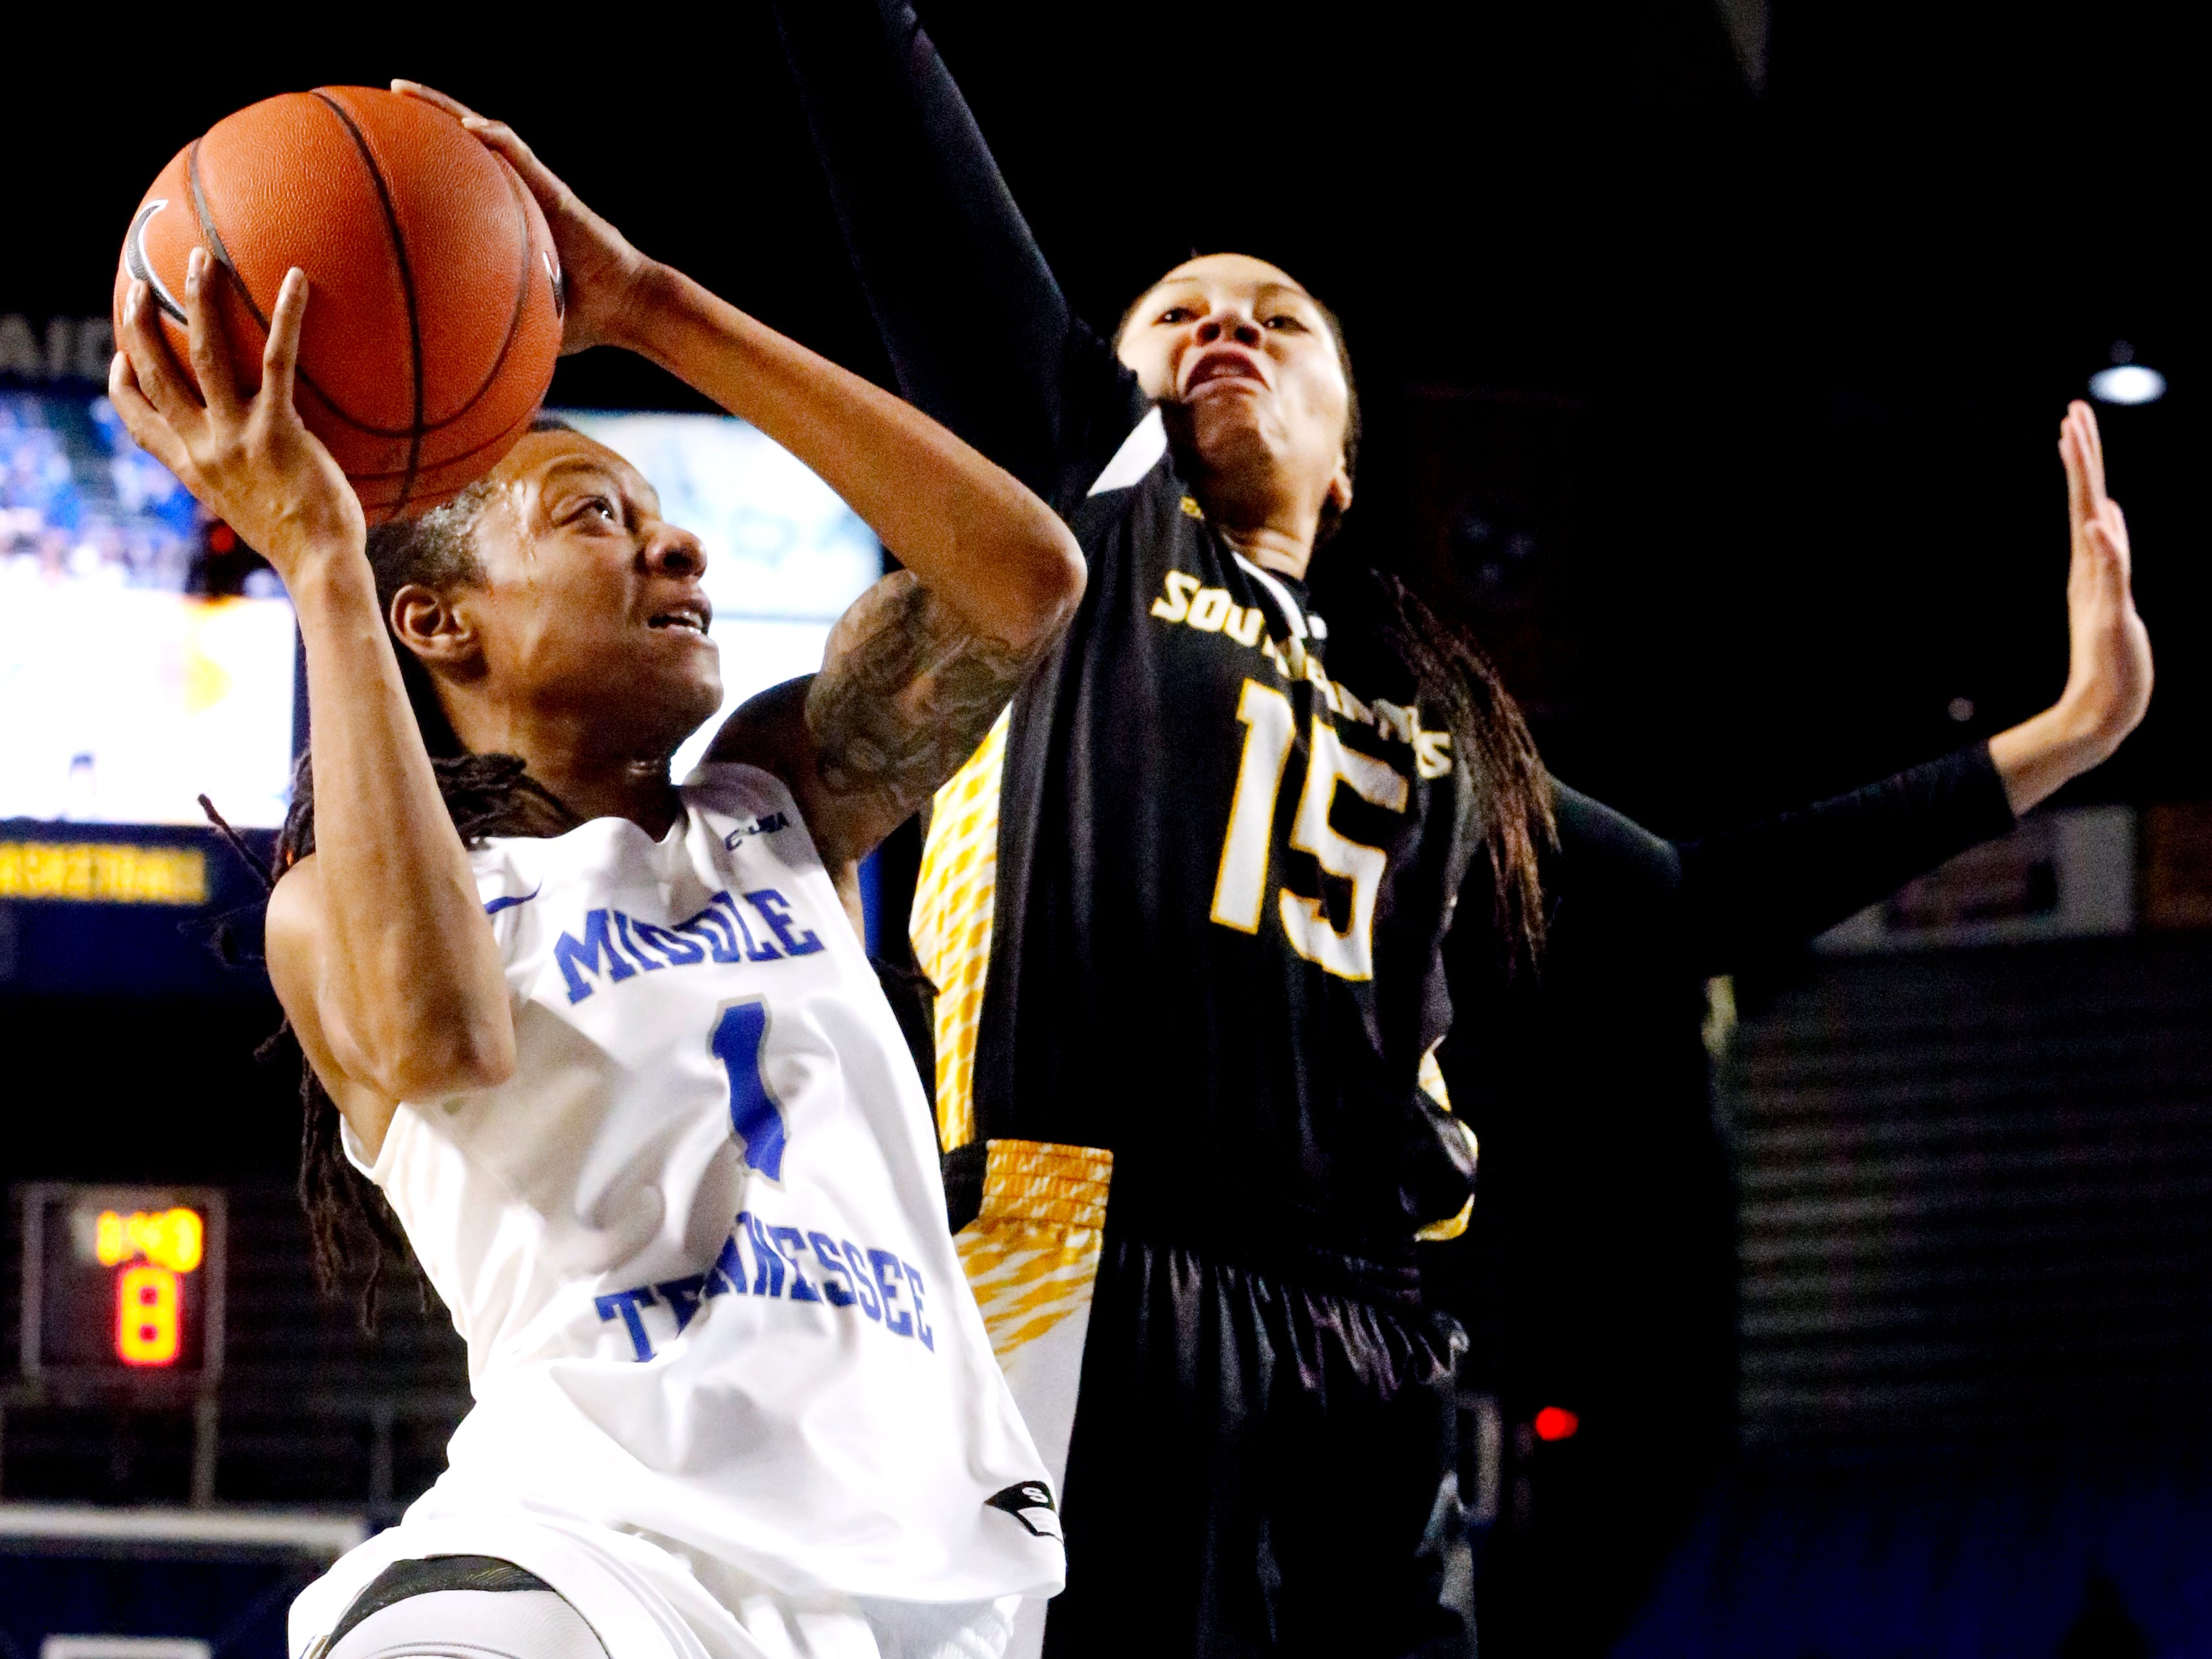 MTSU's guard A'Queen Hayes (1) goes up for a shot s Southern Miss' Amber Landing (15) guards her, on Thursday Jan. 10, 2019.